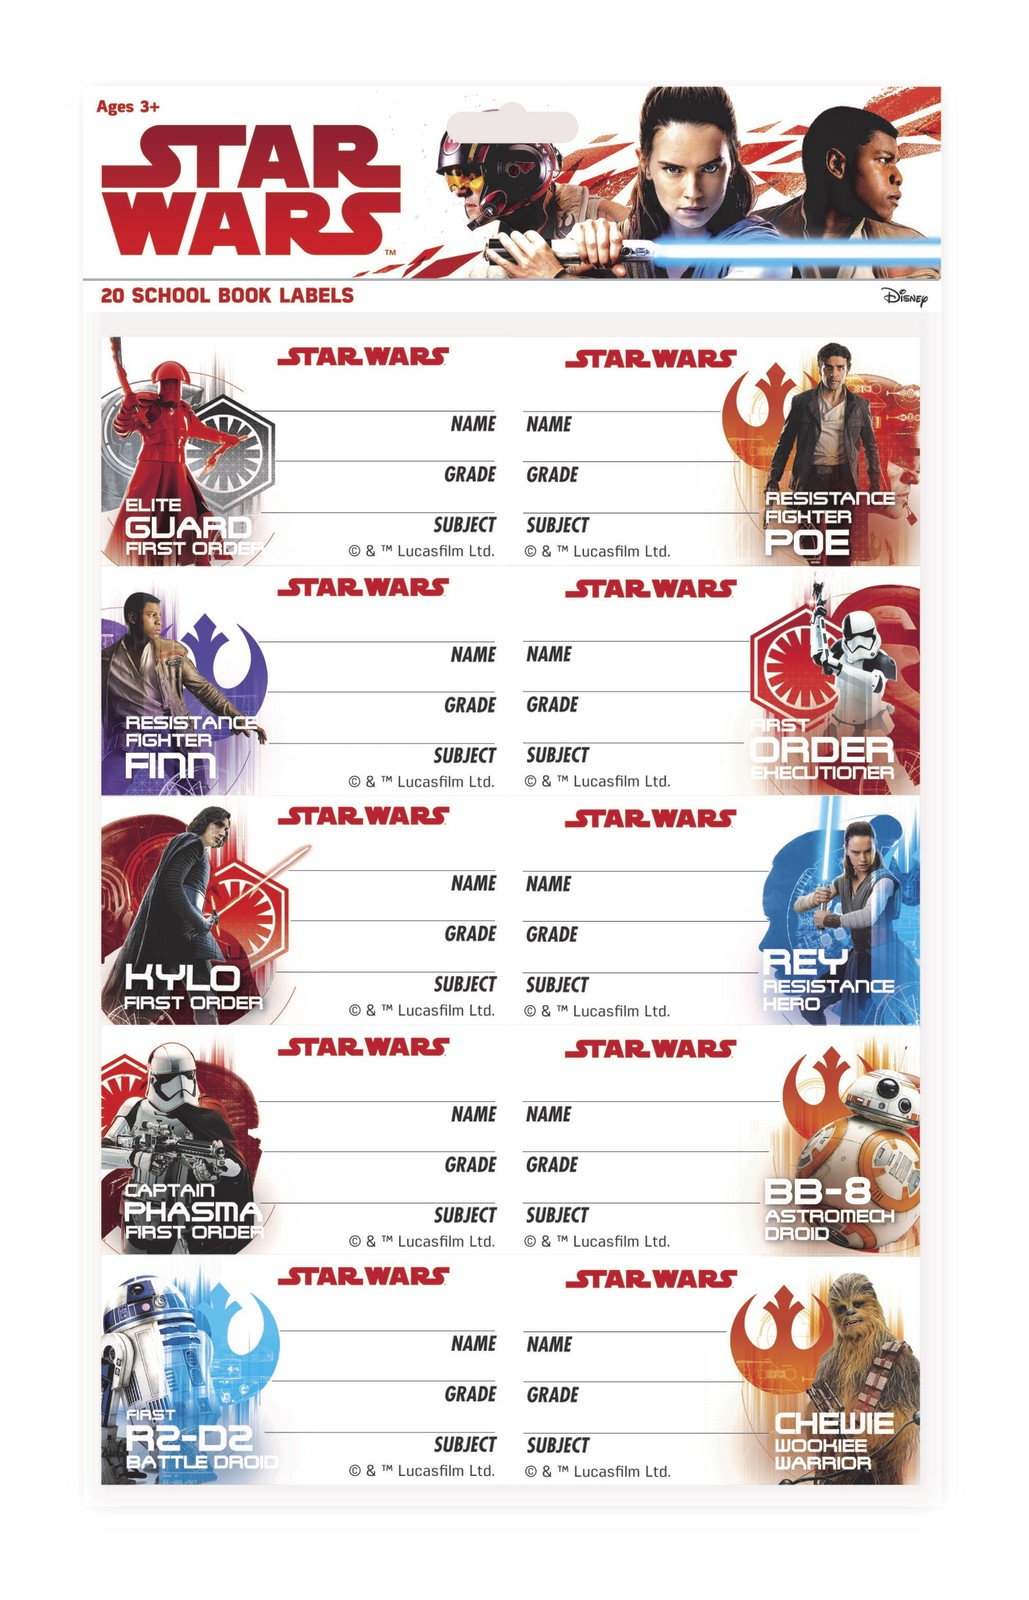 Star Wars: The Last Jedi Book Labels image